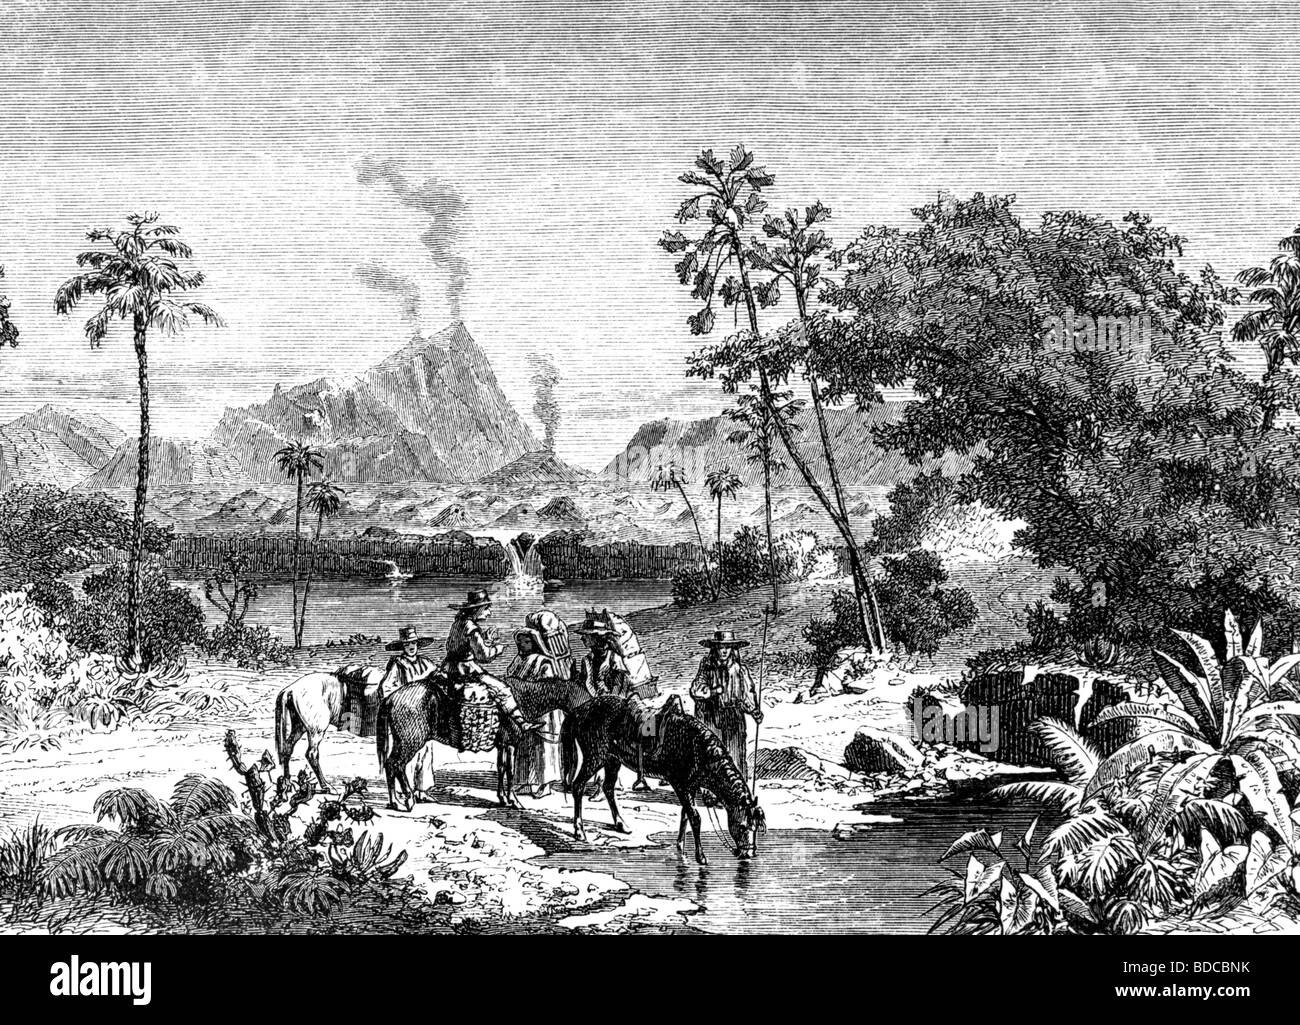 geography / travel, Mexico, landscapes, landscape with volcano Jorullo, wood engraving, 19th century, historic, Stock Photo